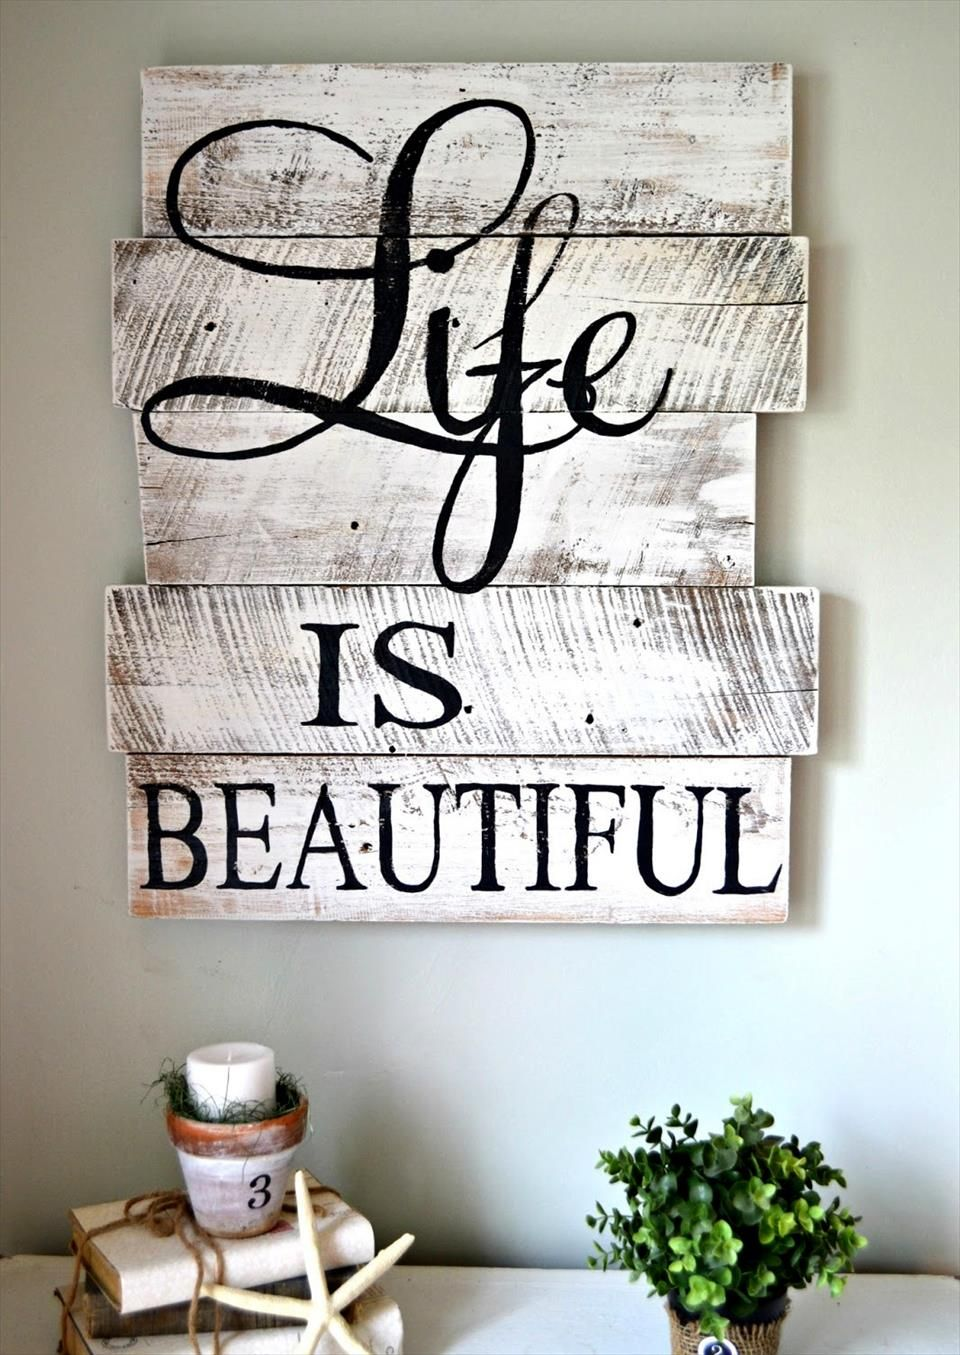 Distressed White Pallet Wall Art 20 Wonderful Pallet Ideas Using Pallets Wood 101 Pallets Part 2 Chic Home Decor Easy Home Decor Rustic Wall Art